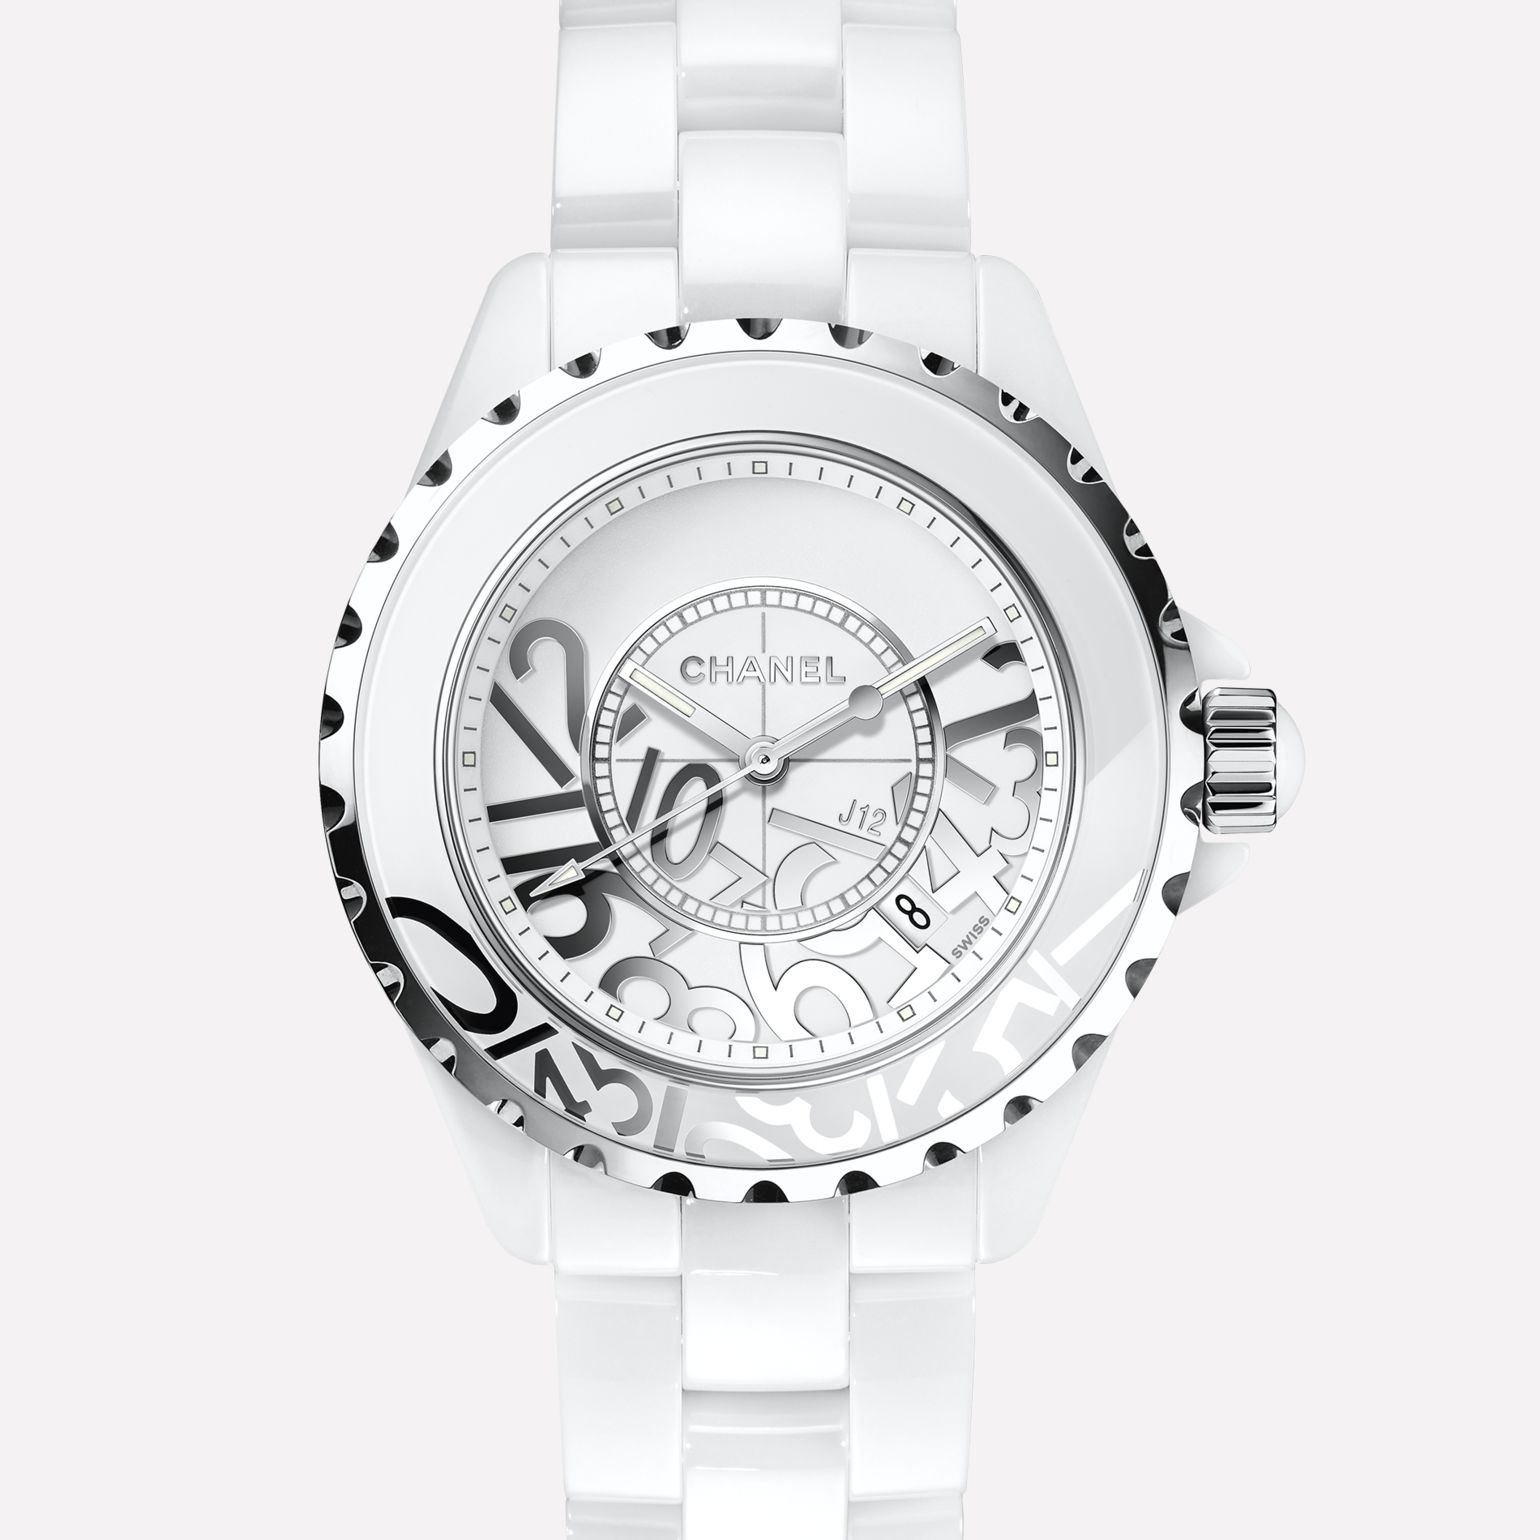 J12 GRAFFITI Watch White ceramic and steel, deconstructed numerals